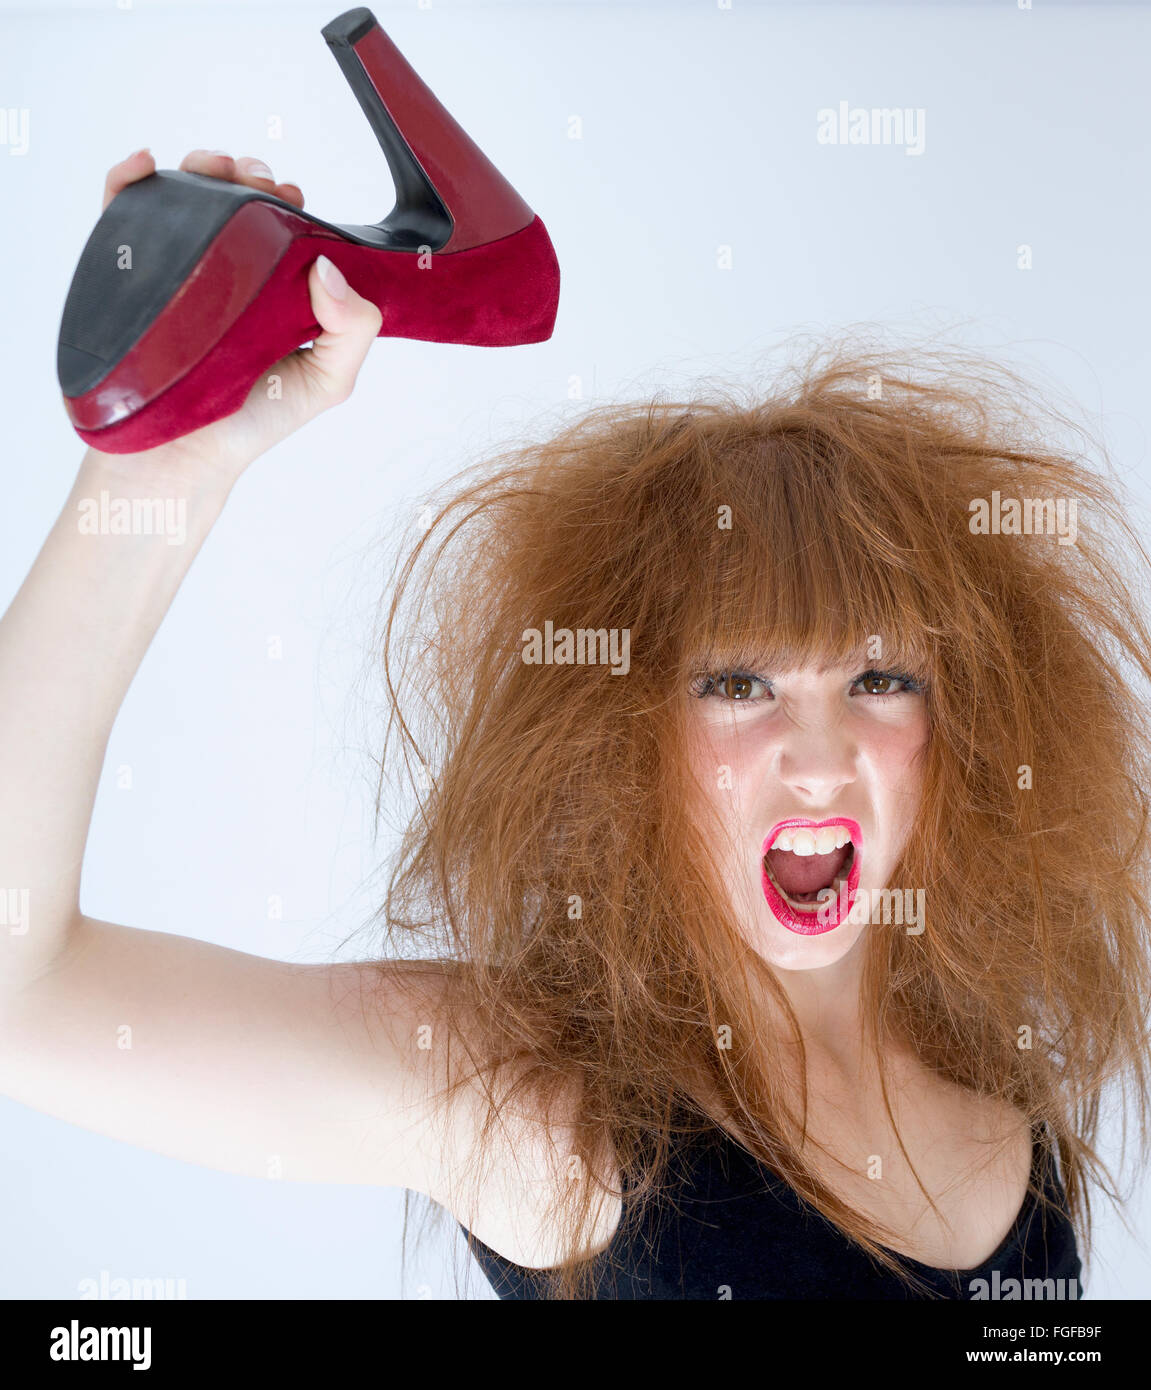 Woman with messy hair holding a red suede high heeled shoe in the air about to strike, screaming - Stock Image